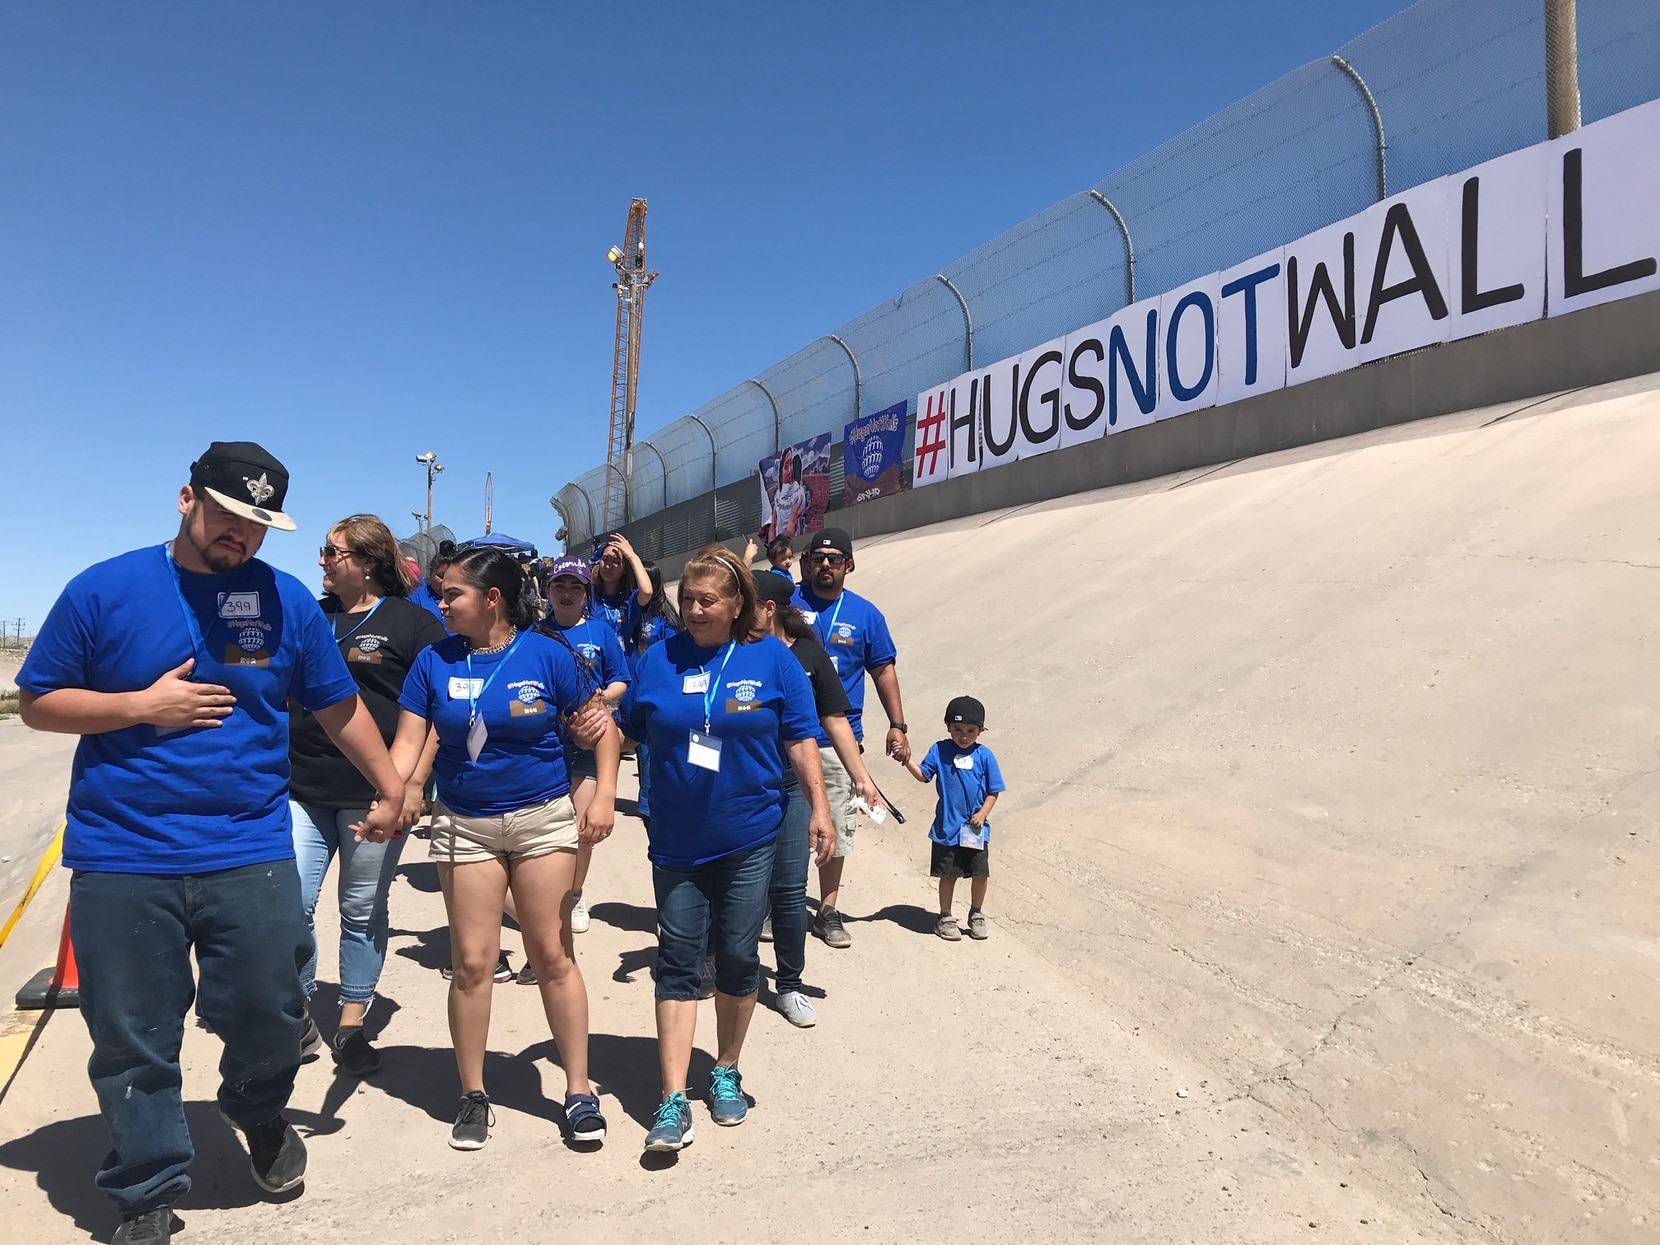 More than 4,000 people attended Hugs Not Walls in El Paso. Of that number, more than 300 were family members on each side of the border who reunited on the banks of the Rio Grande.